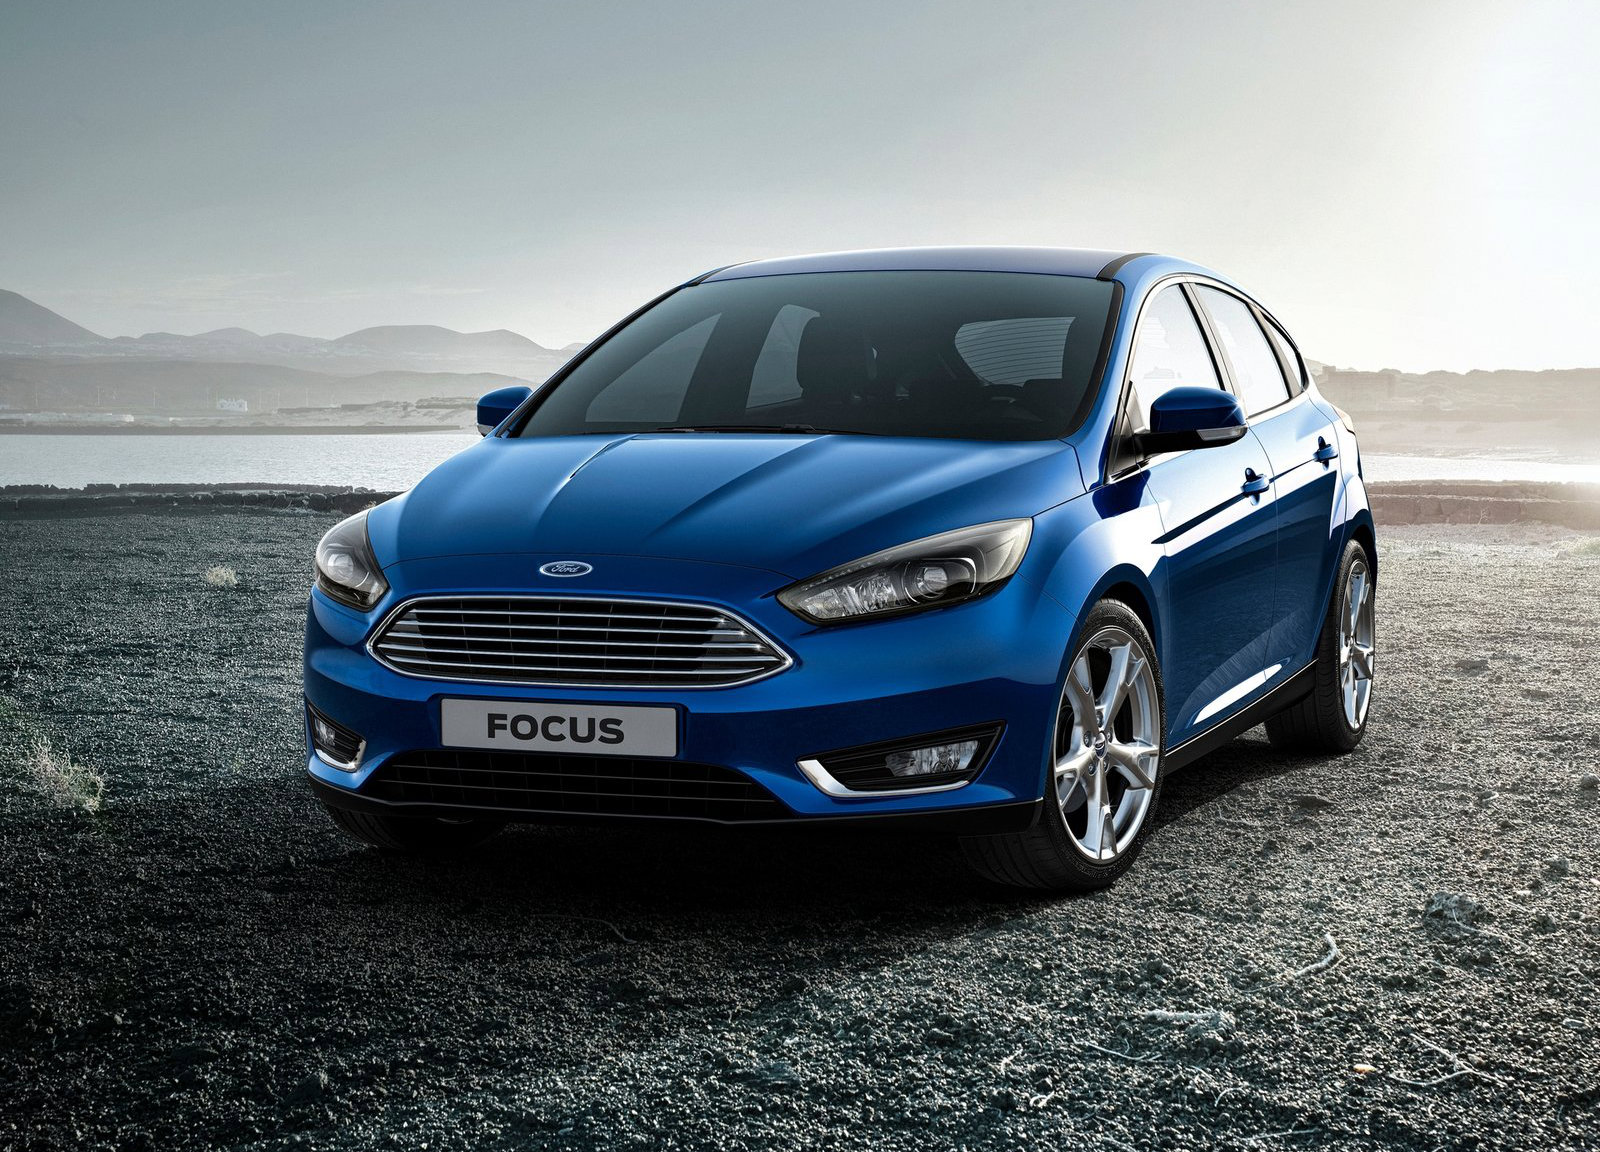 2015 ford focus pricing for europe it starts from18750 tops at 28750 video photo gallery 1